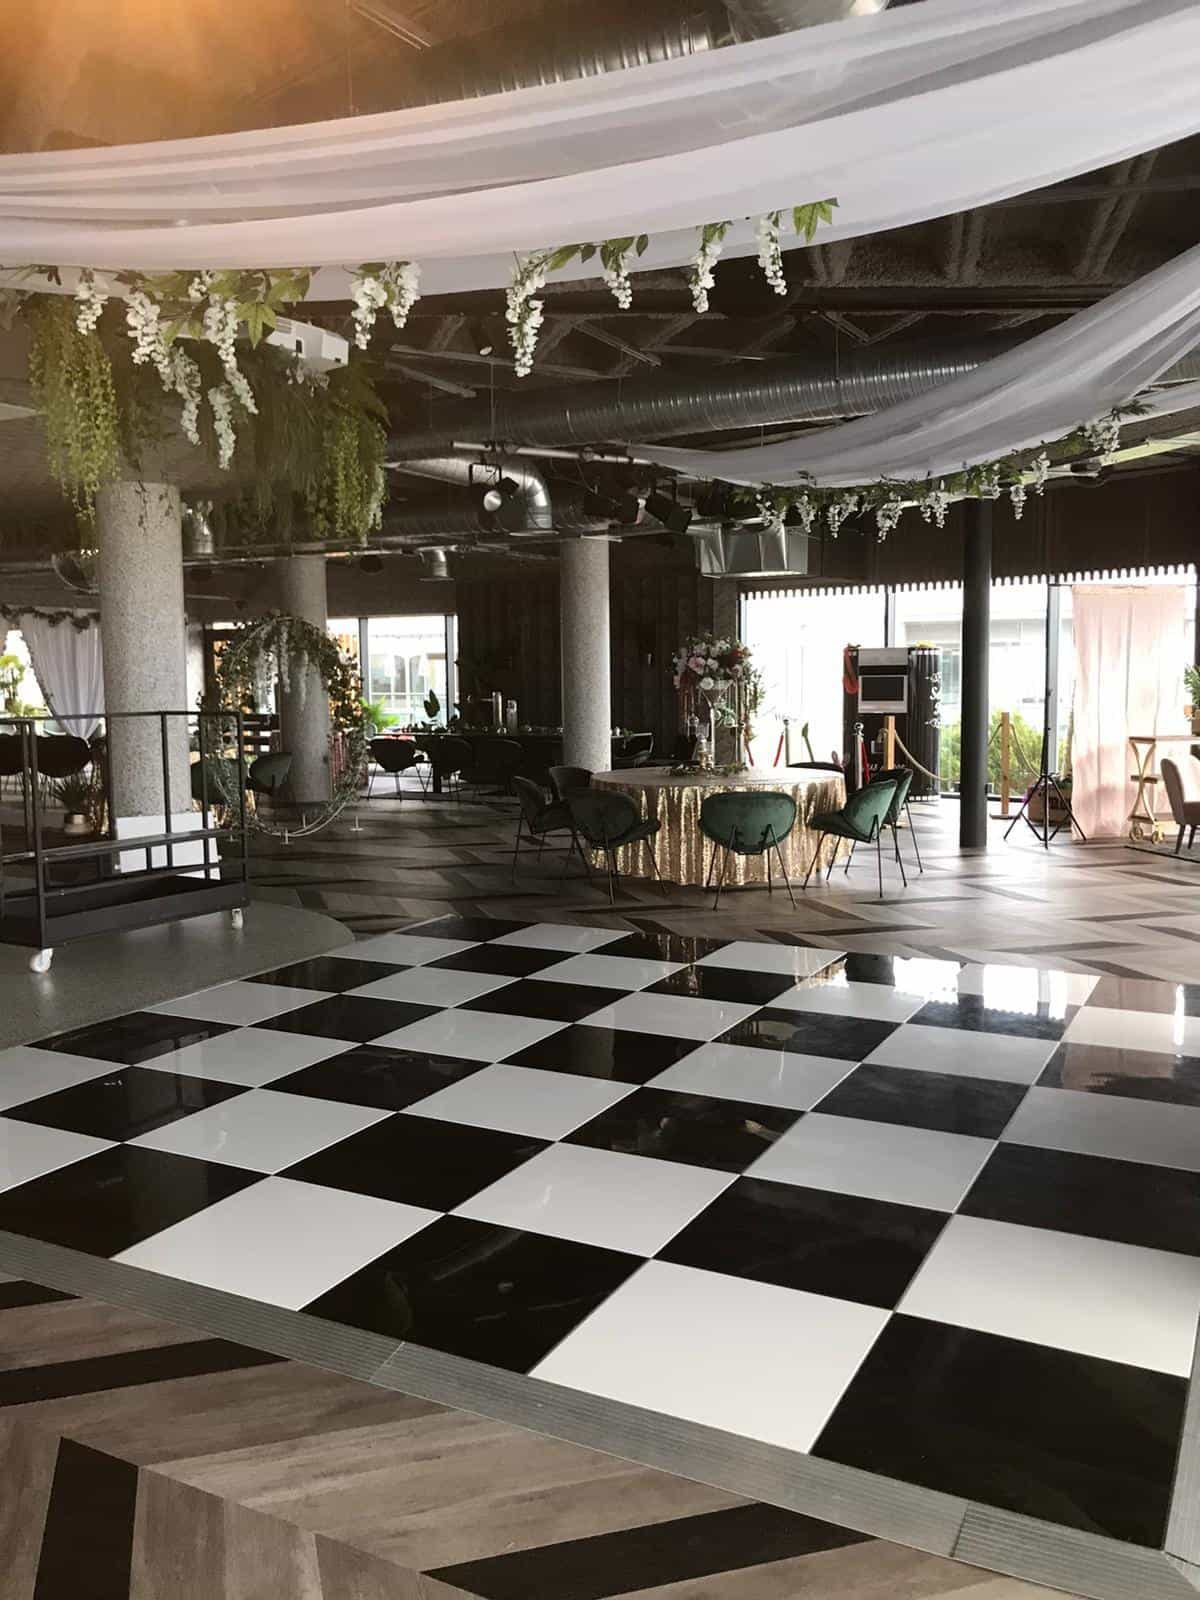 Wedding black and white chessboard style dancefloor at the Bliss hotel southport